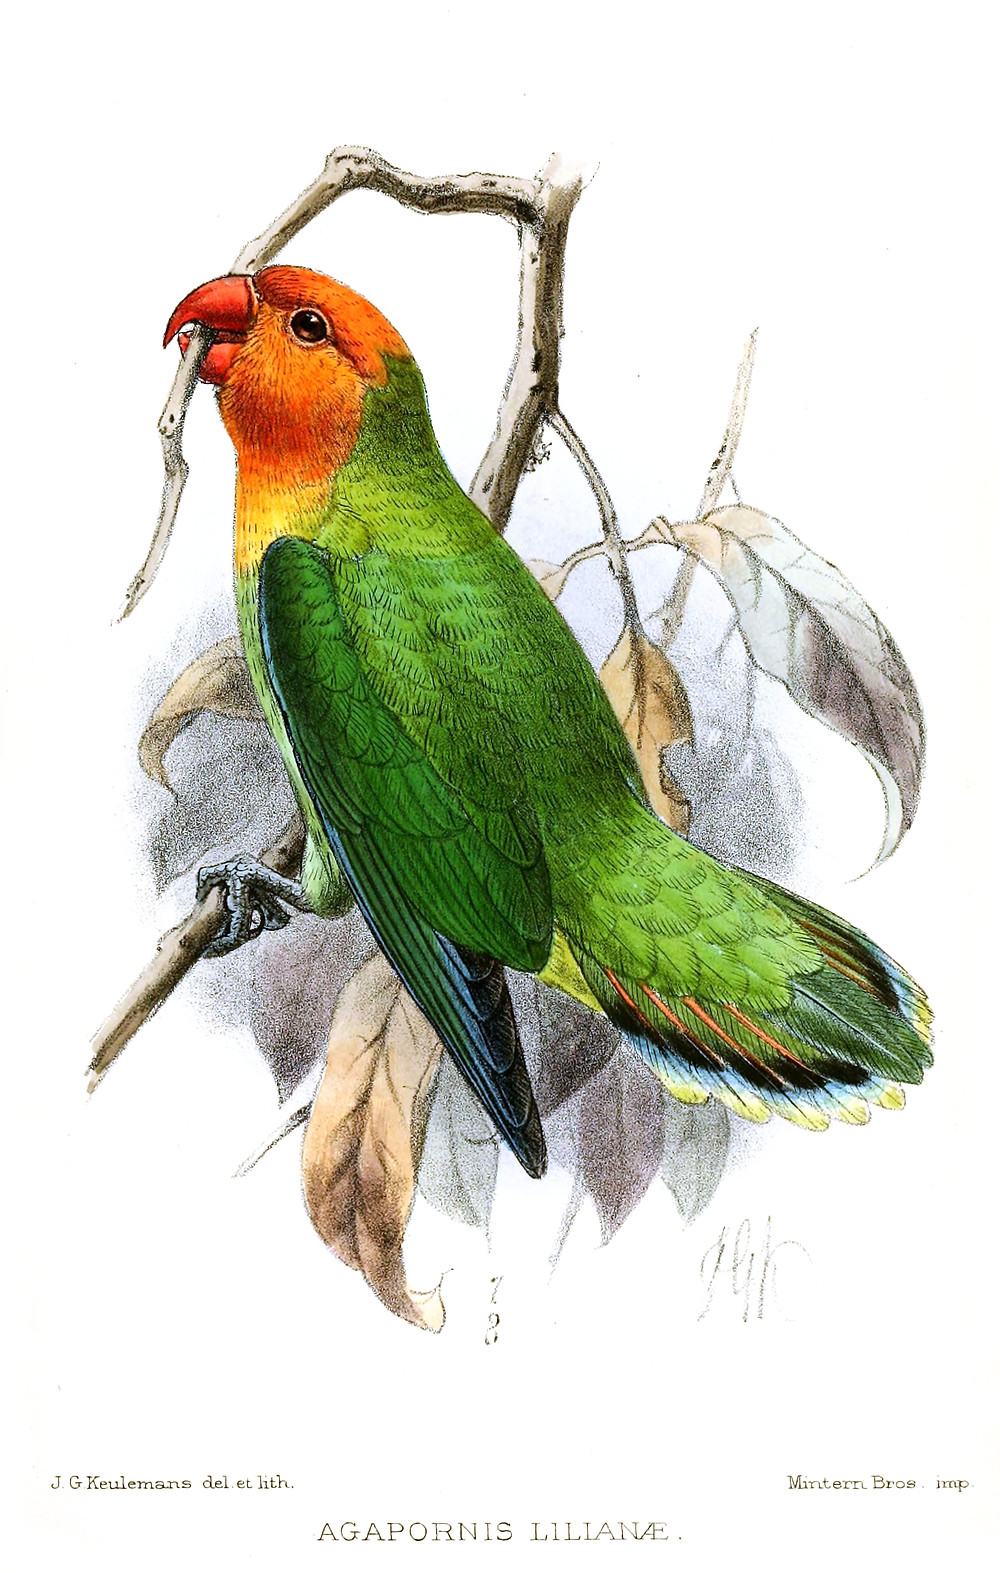 Stylized painting of Lilian's Lovebird standing on a branch and holding another branch with its beak. Picture shows the bird's green body, yellow throat and orangey-peach-coloured head and beak. Some leaves in background